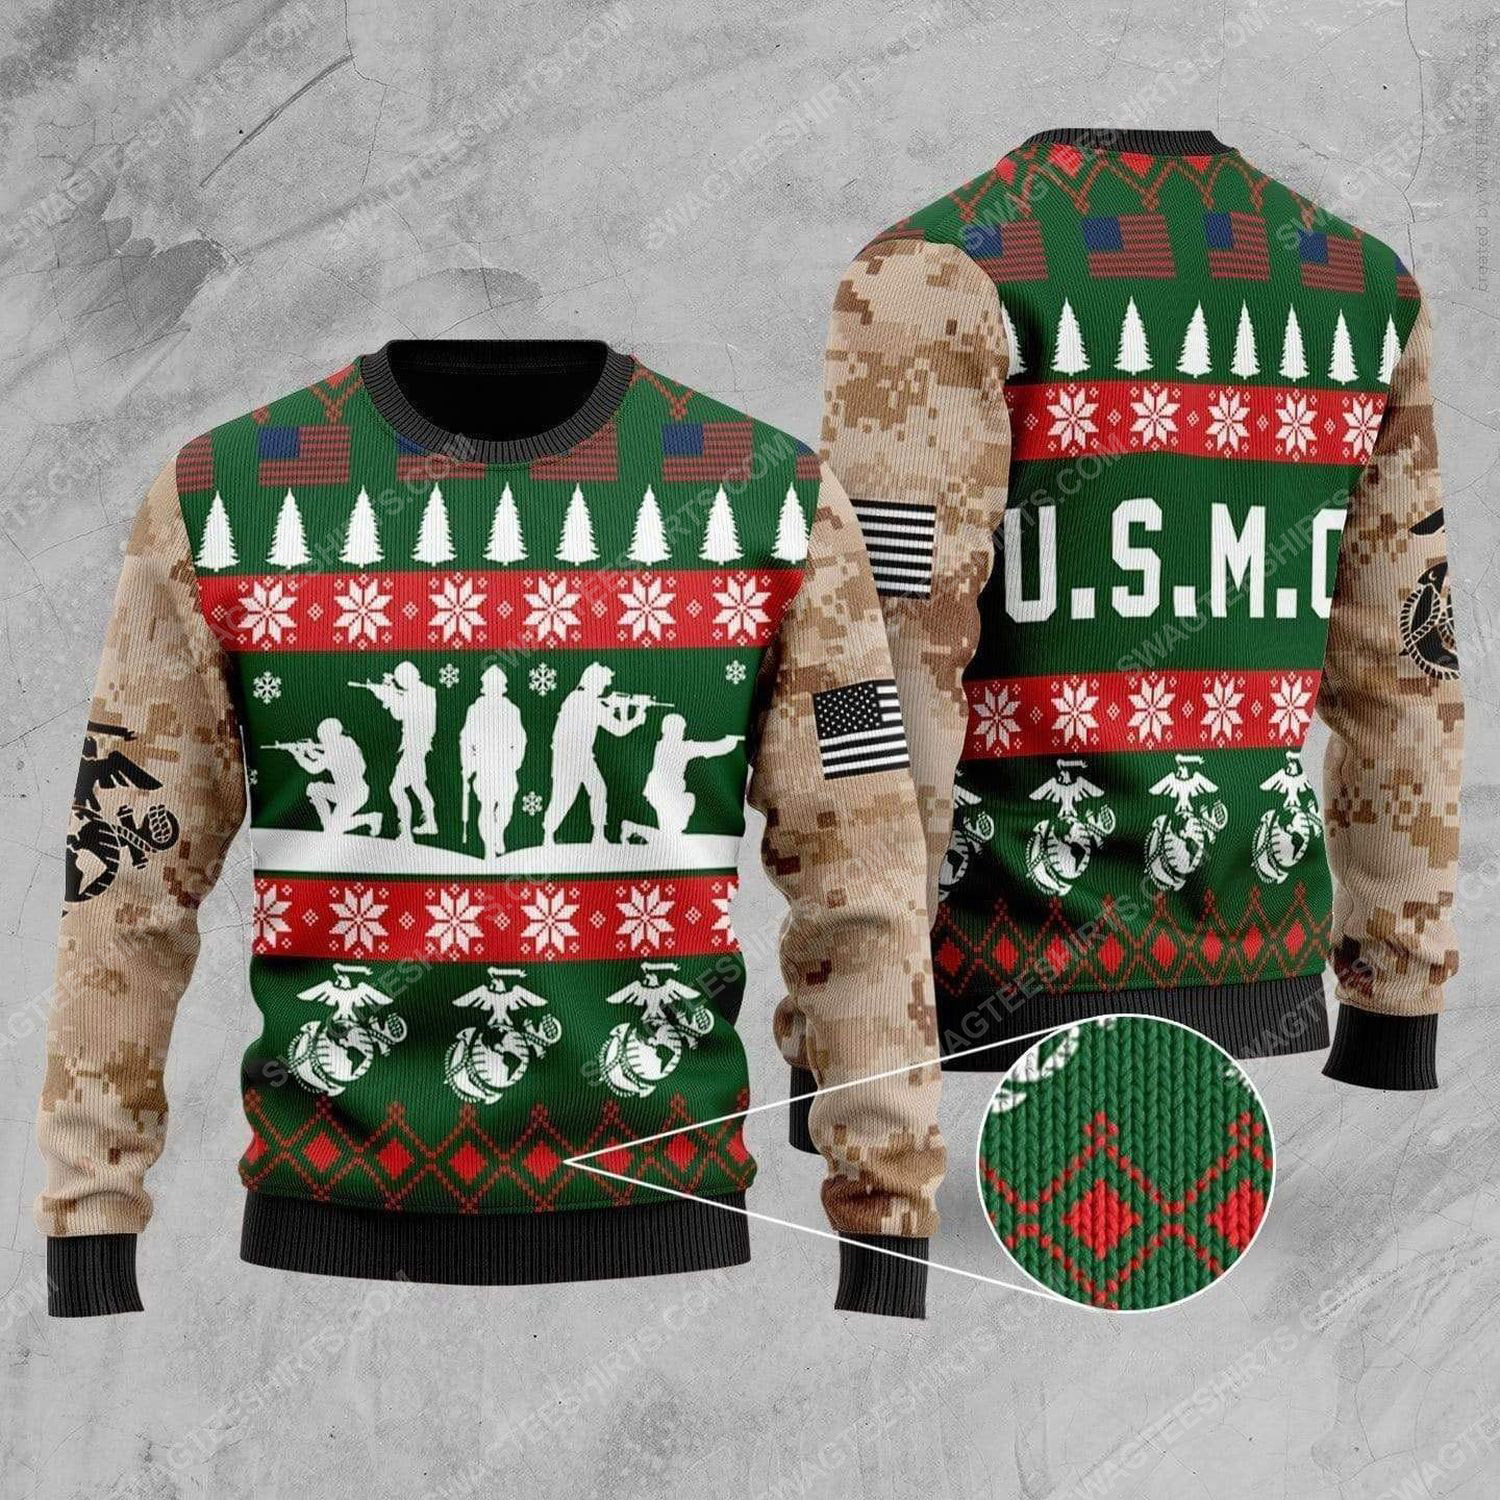 United states marine corps all over print ugly christmas sweater 3